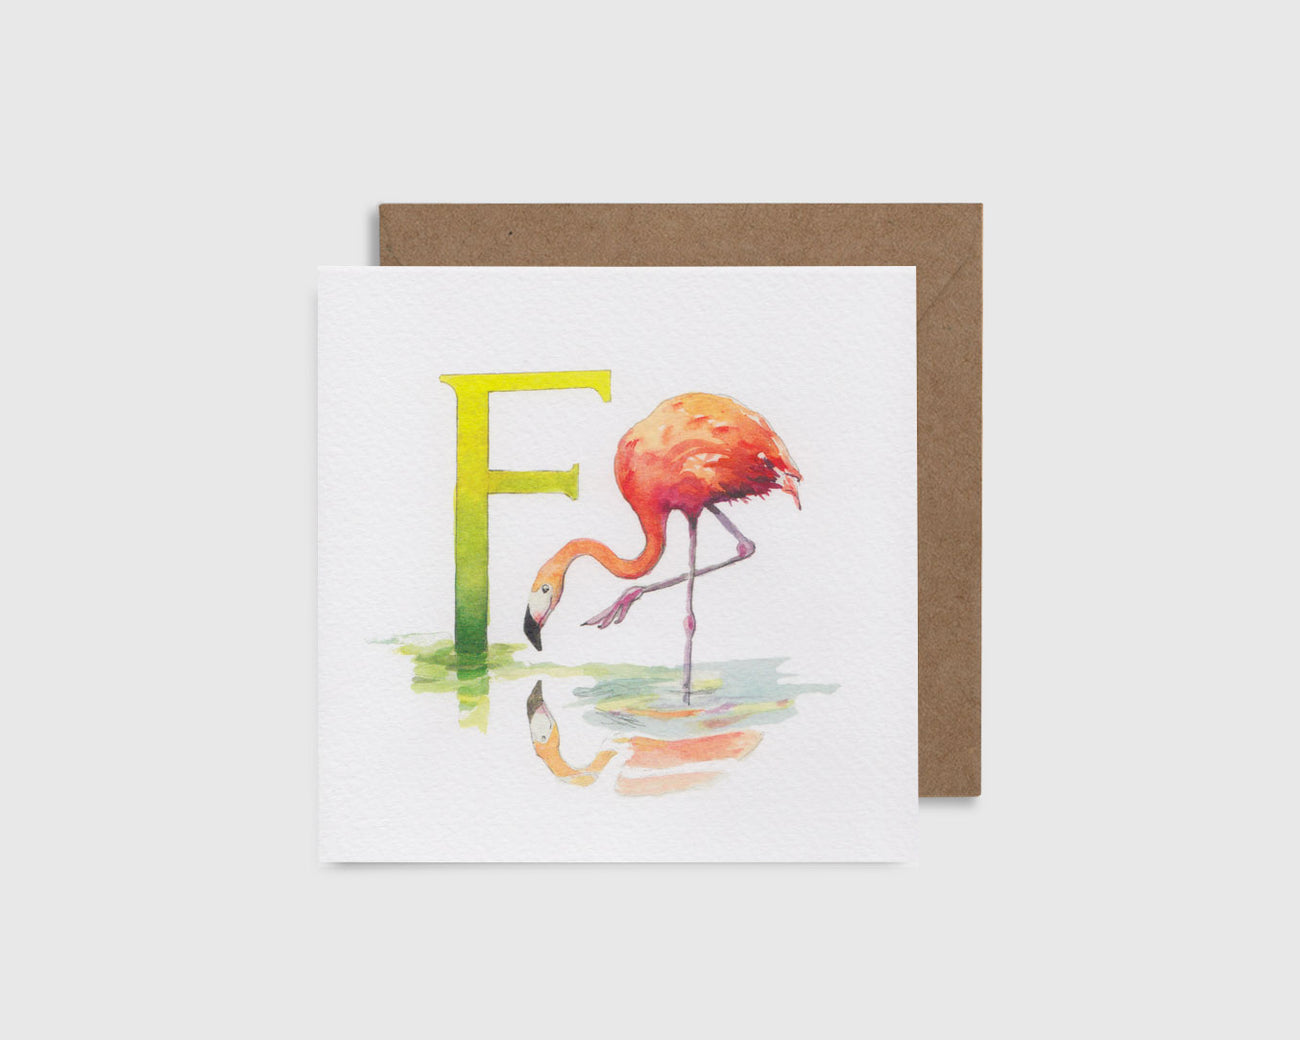 F is for Flamingo - F comme Flamant